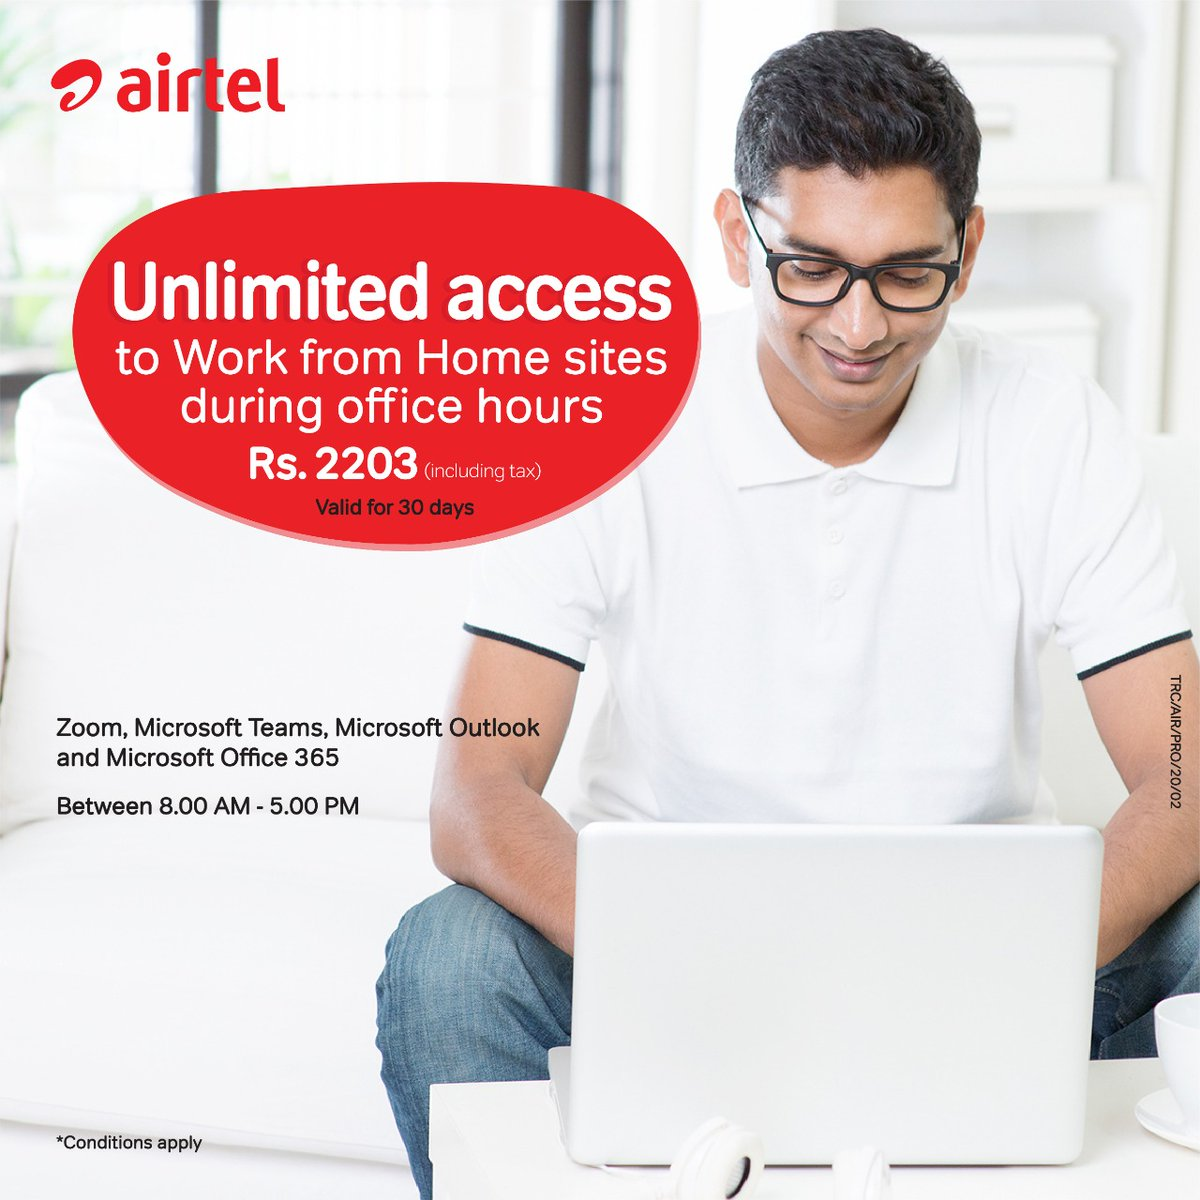 Get unlimited access to Zoom, Microsoft Teams,Microsoft Outlook & Microsoft Office 365 Working from Home sites between 8AM to 5PM (during office hours) everyday for 30 days just only for Rs.2203( incl of taxes)  Activate  https://t.co/KCQfOk39lq , Dial *550# or use My Airtel App https://t.co/TTs1Iyddwf